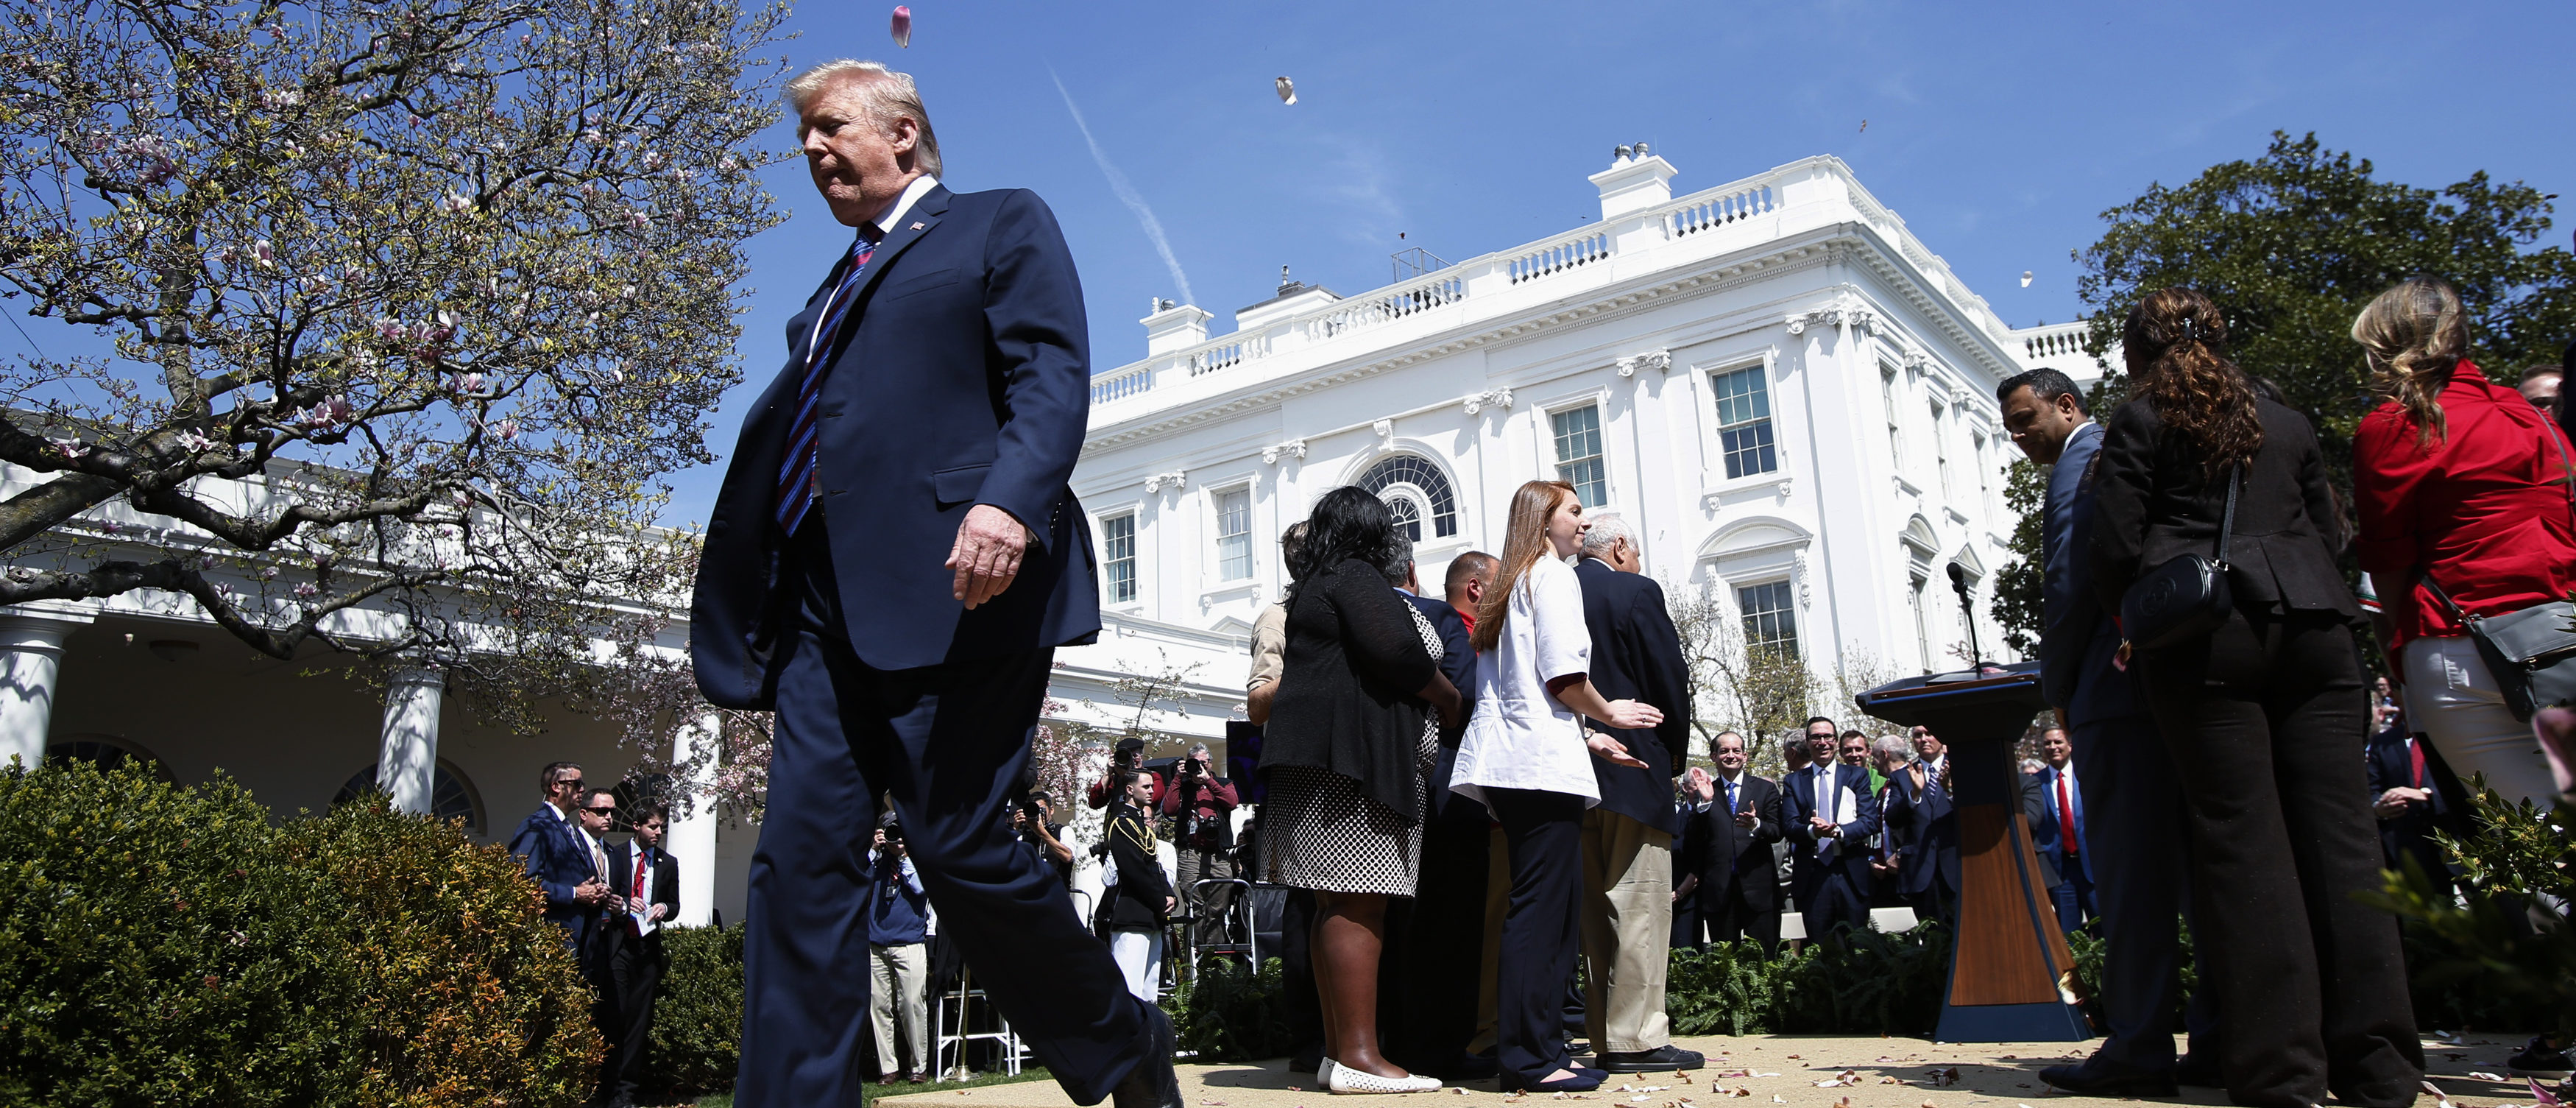 U.S. President Donald Trump departs after giving remarks on tax cuts for American workers during an event in the White House Rose Garden in Washington, U.S., April 12, 2018. REUTERS/Kevin Lamarque - HP1EE4C1FK5C8